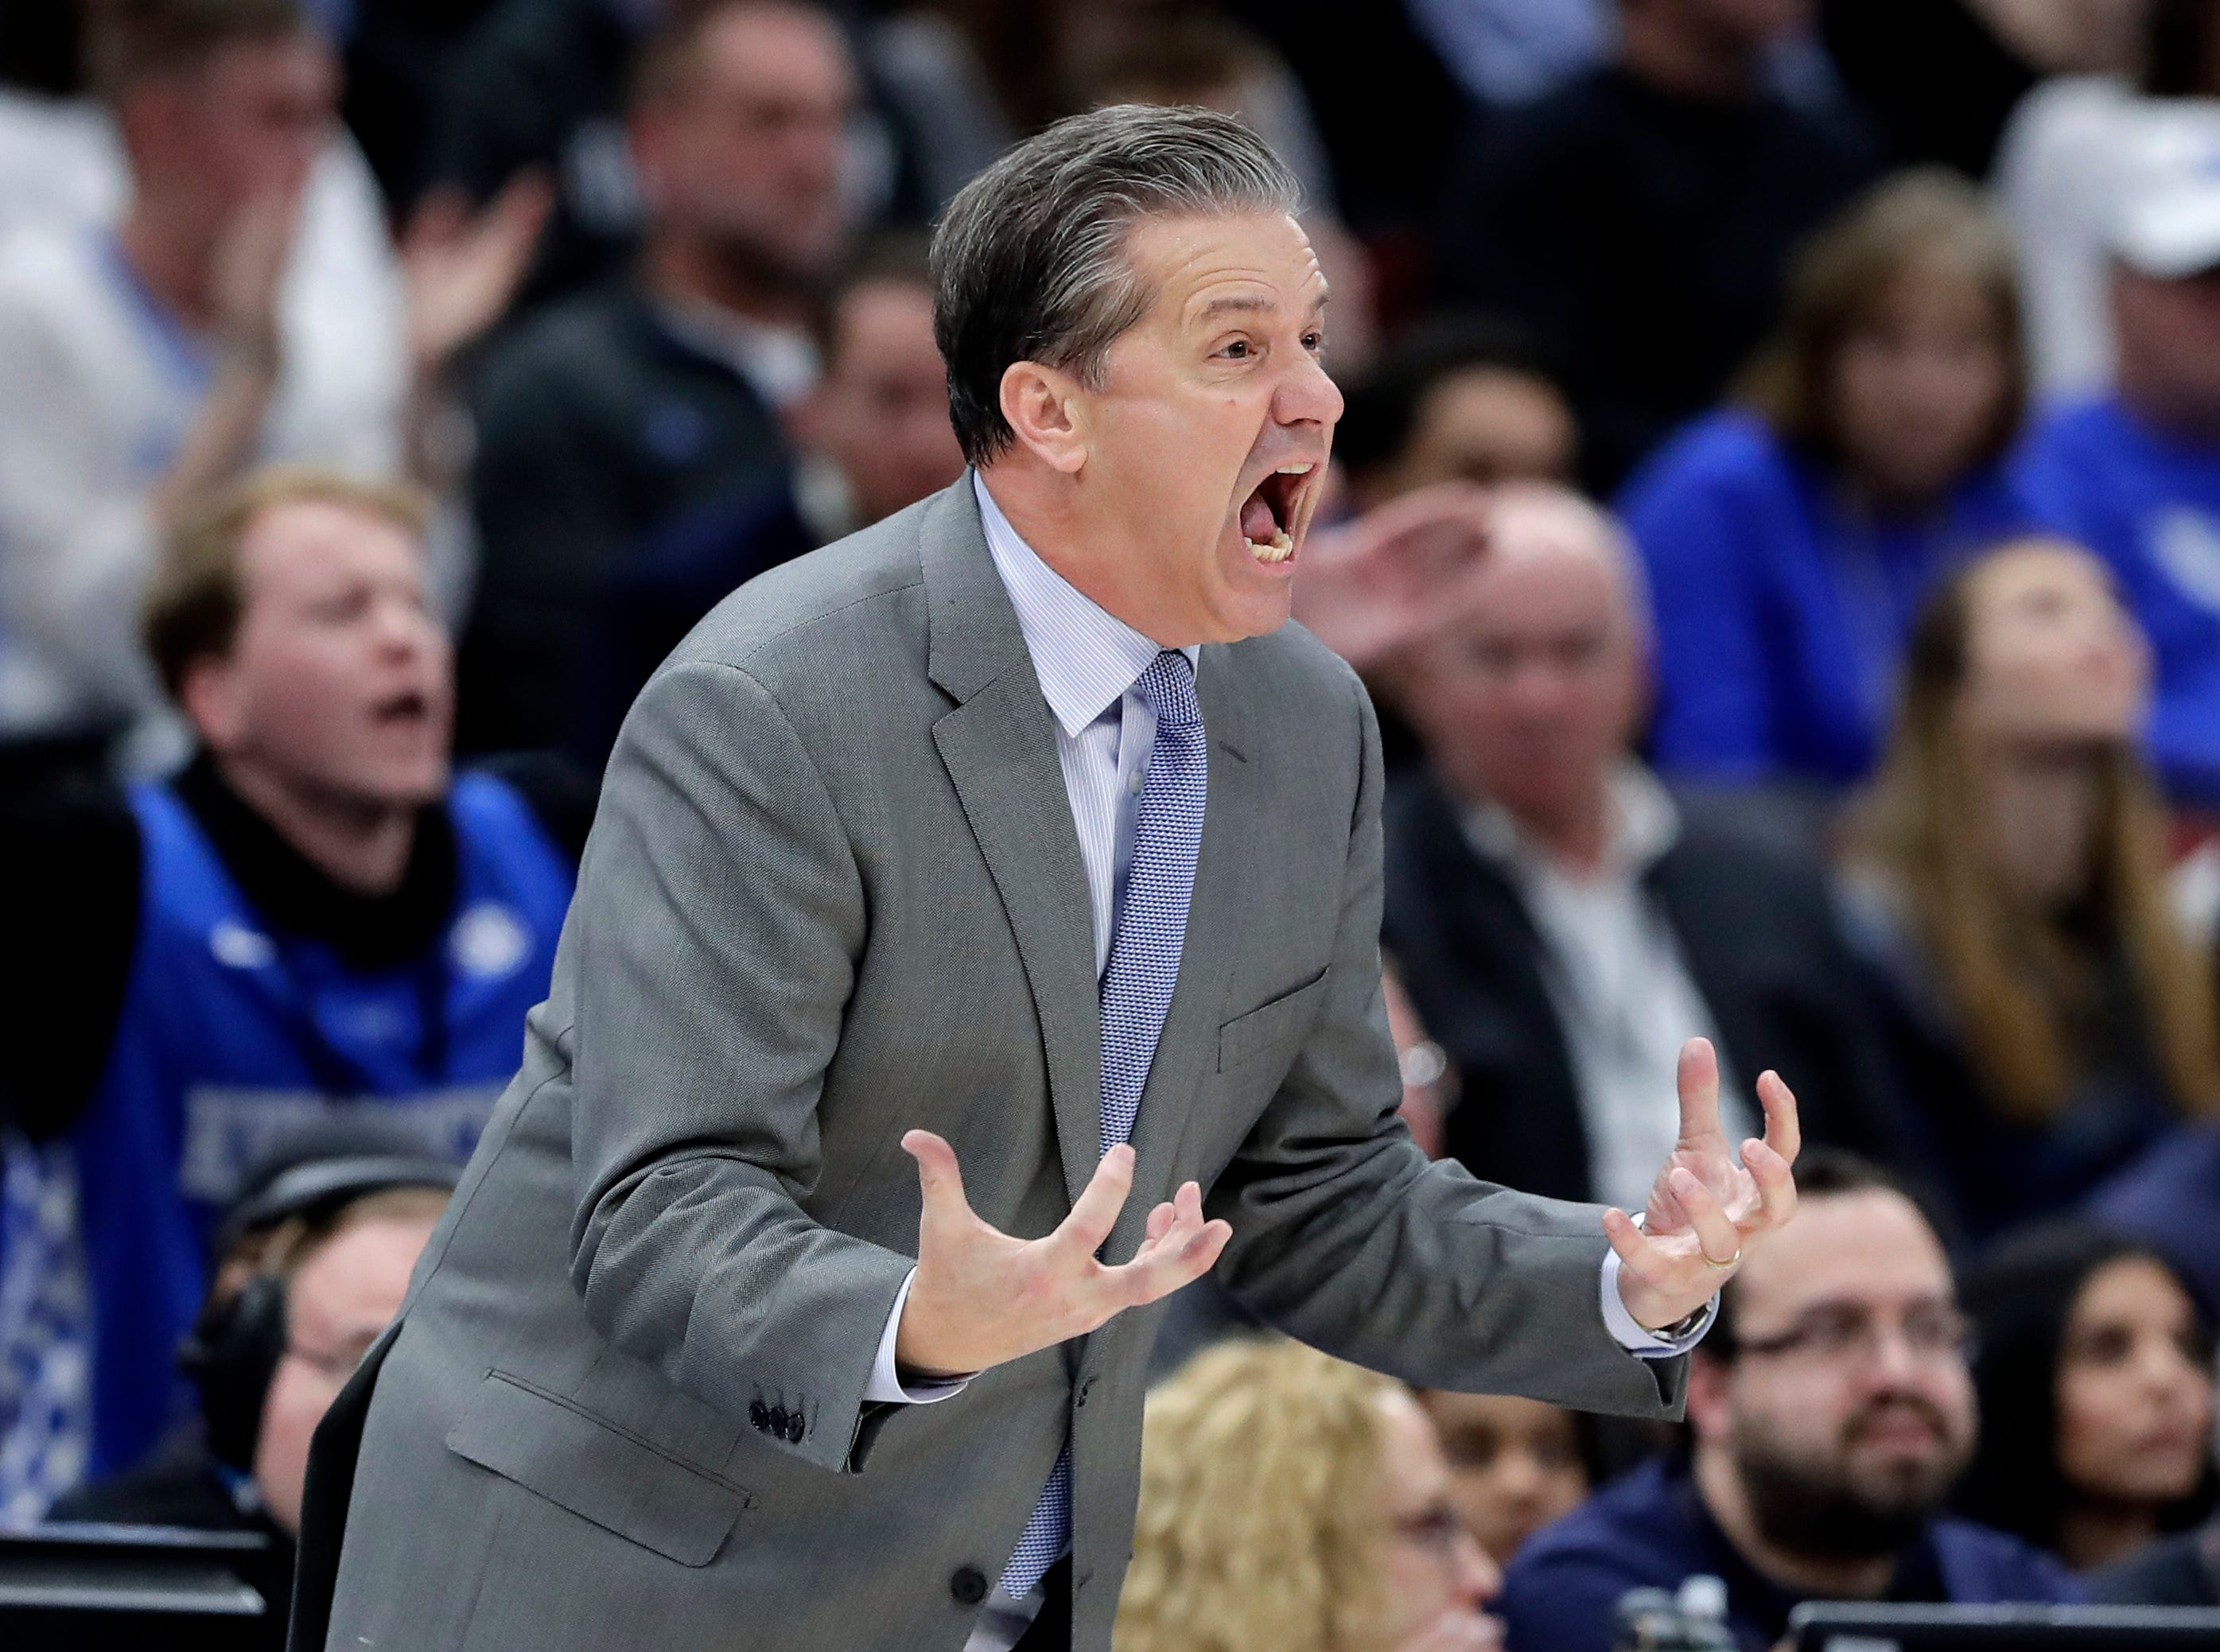 Kentucky coach John Calipari reacts to a call during the second half of the team's NCAA college basketball game against North Carolina on Saturday, Dec. 22, 2018, in Chicago. Kentucky won 80-72.